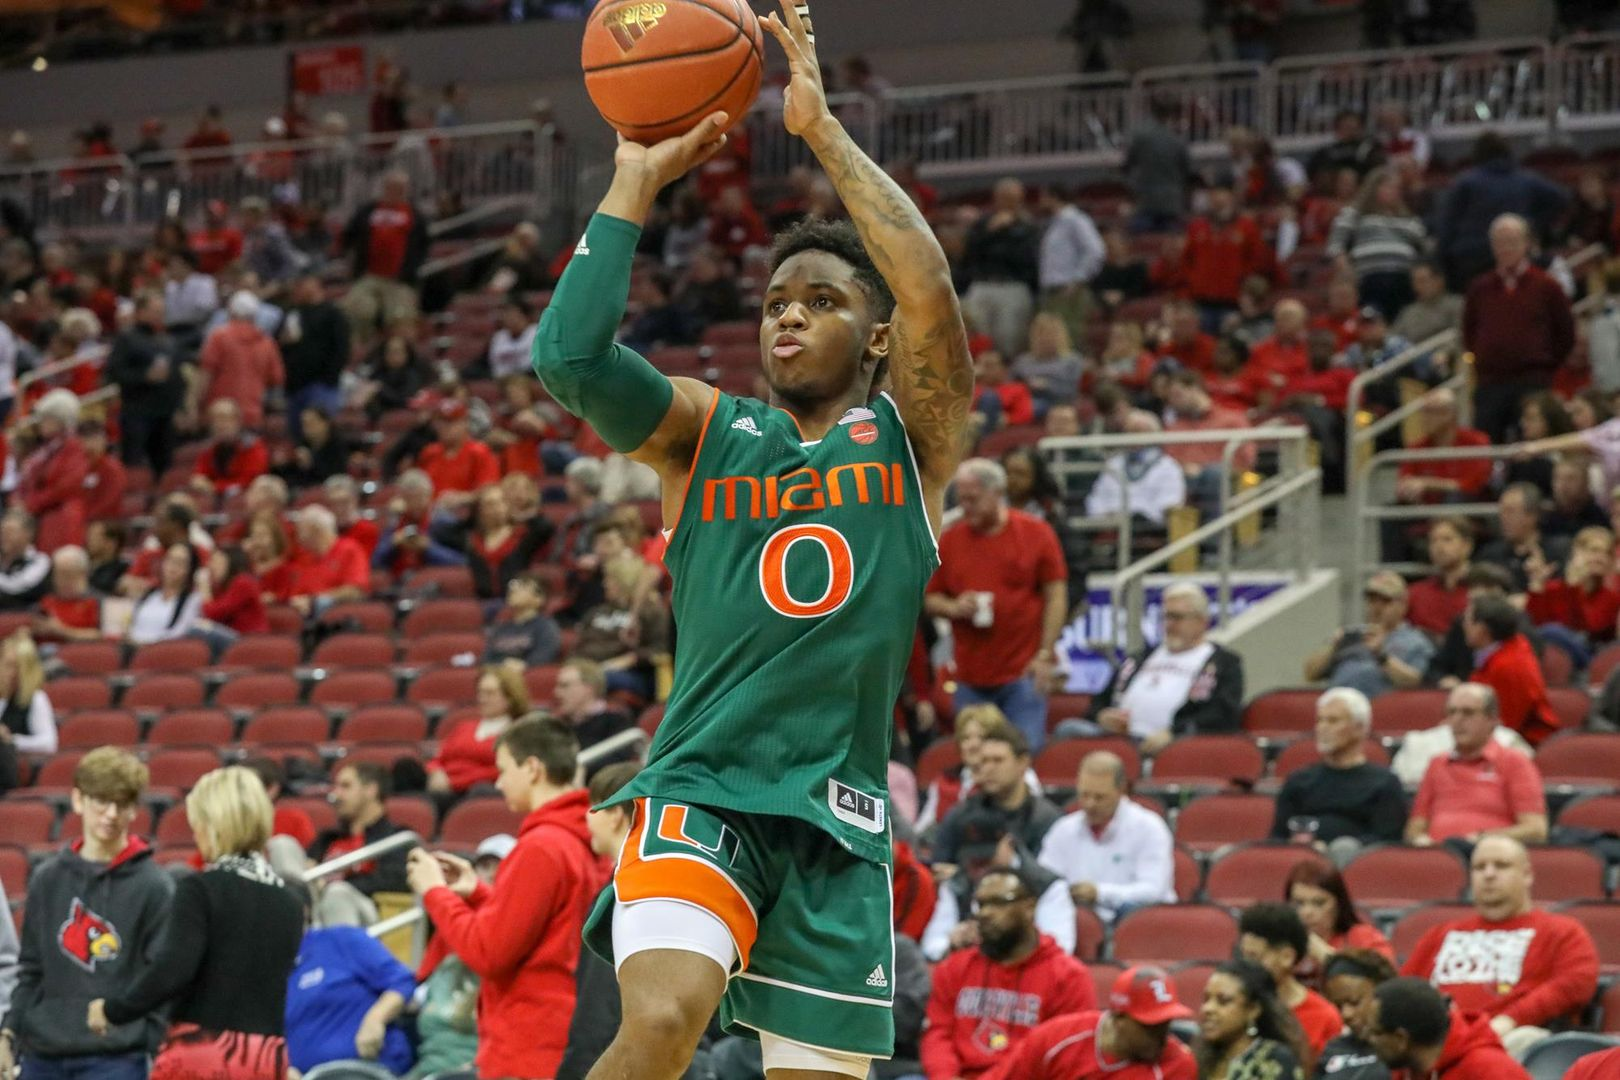 Canes Fall at Louisville, 90-73